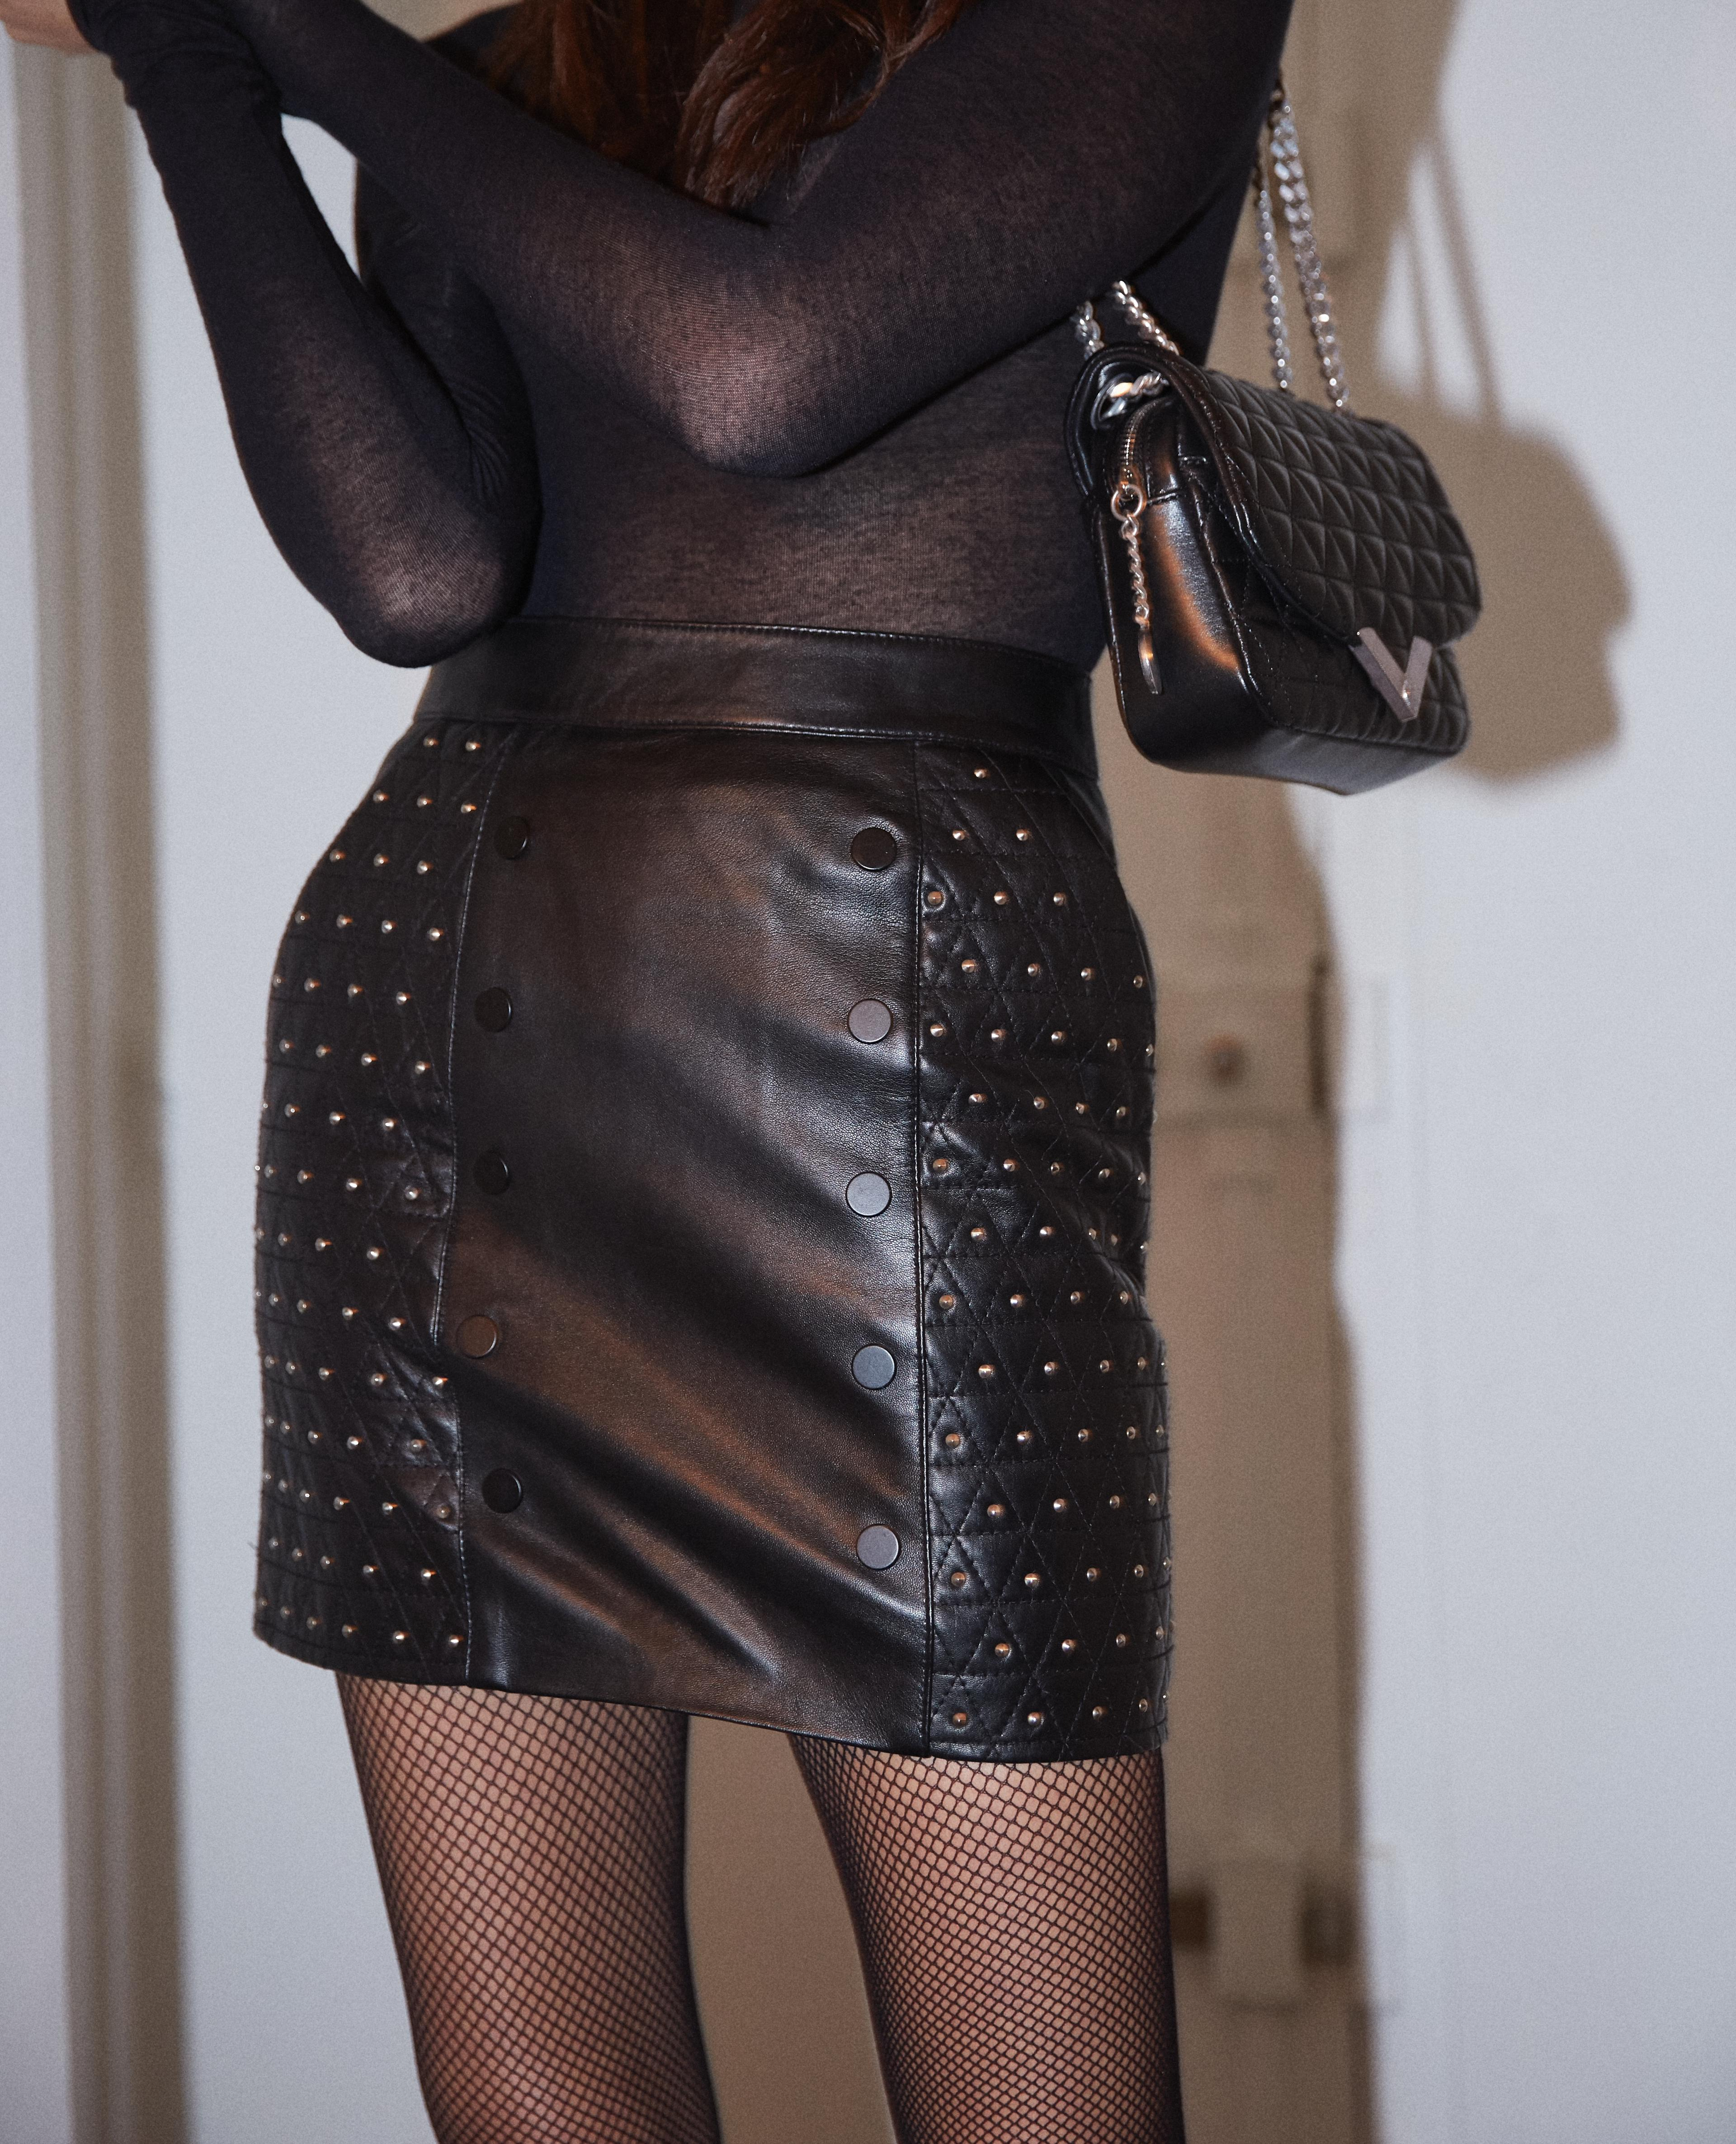 ad6d9780c The Kooples Black Padded Leather Skirt in Black - Lyst